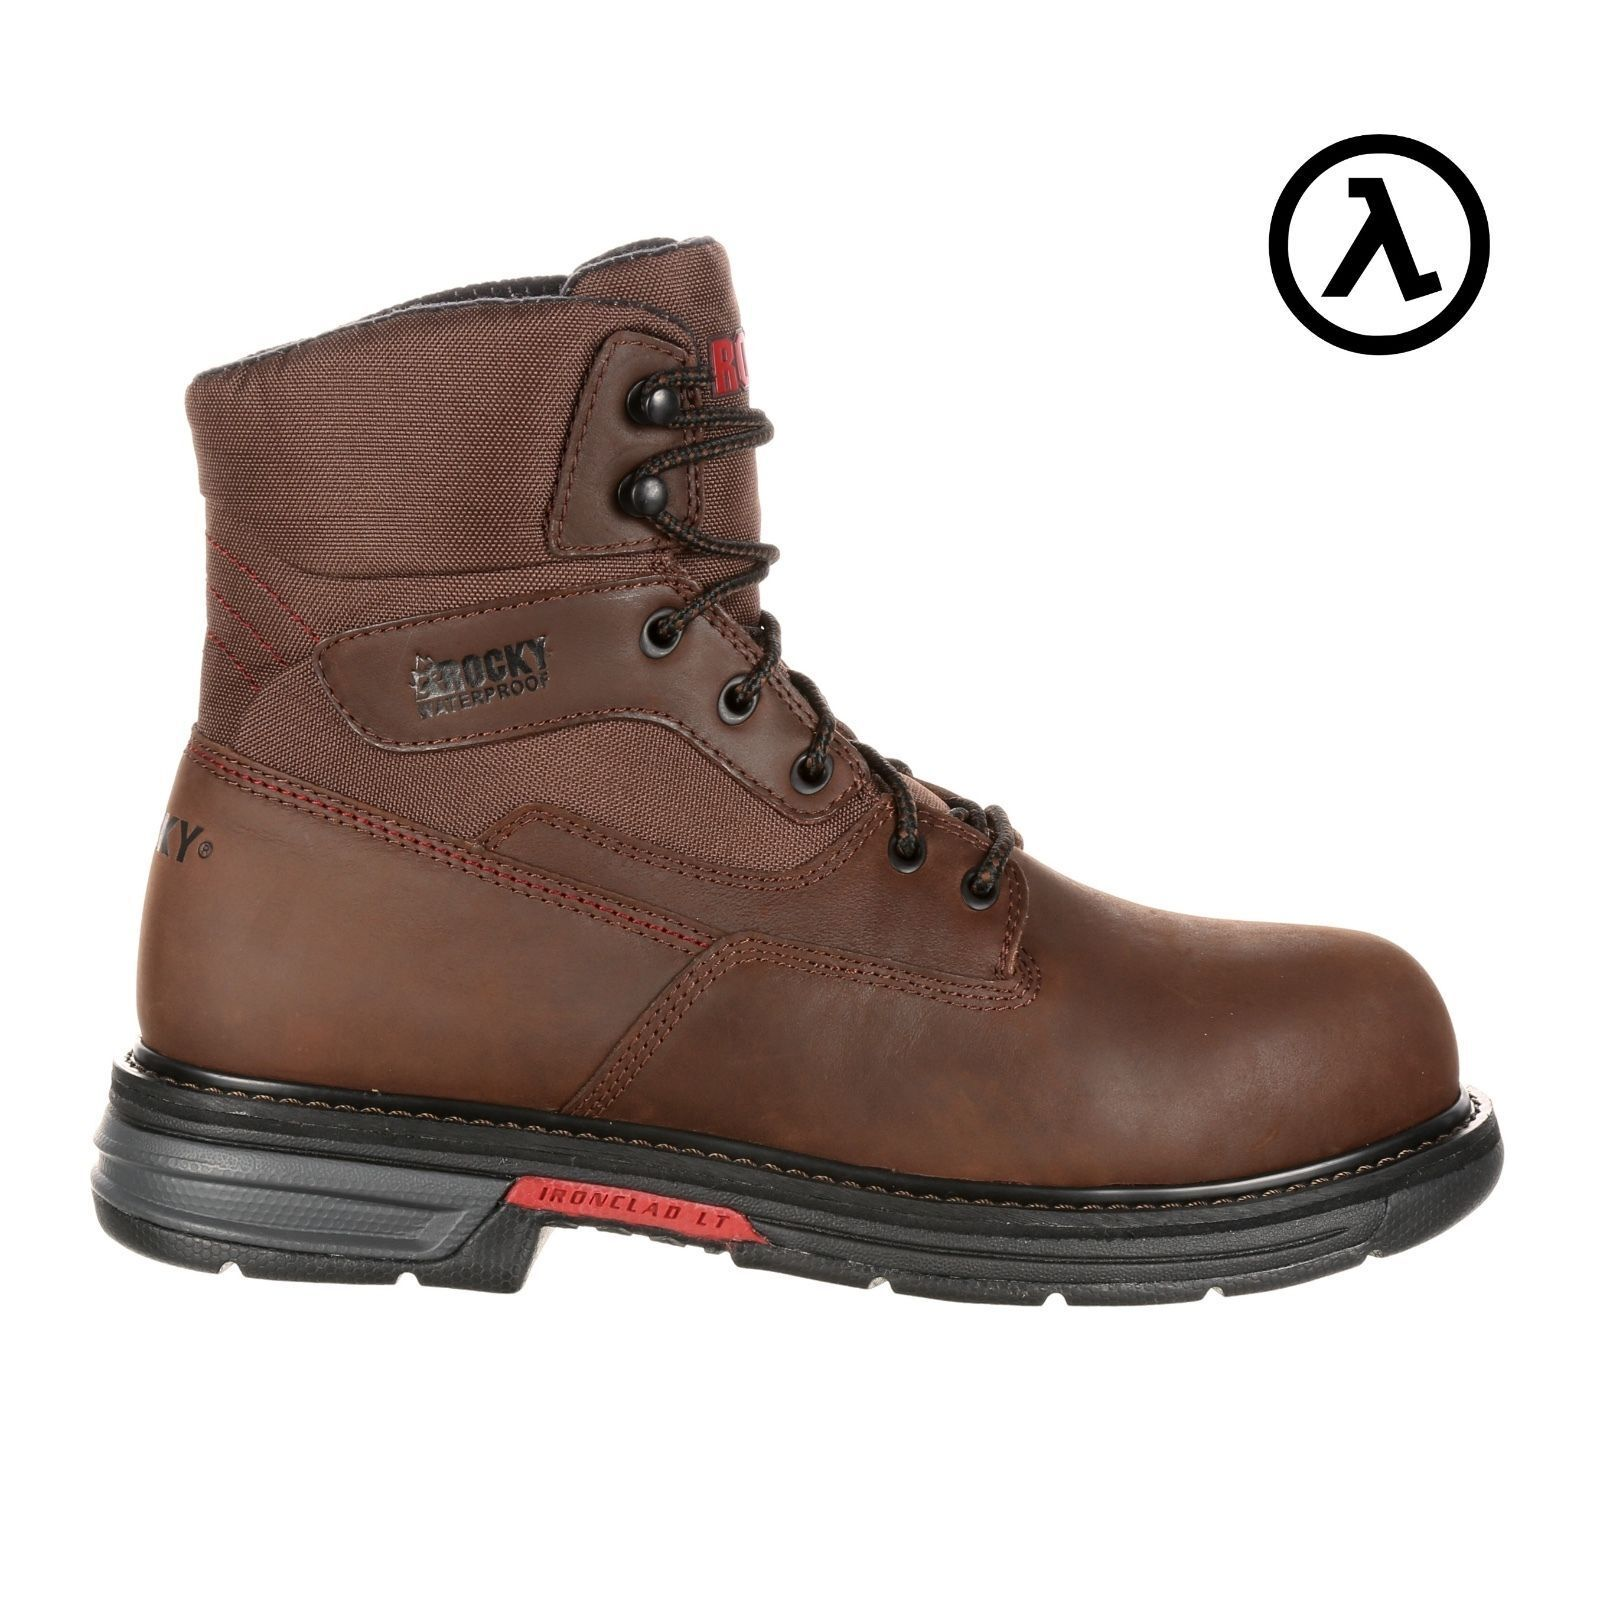 grande sconto ROCKY IRONCLAD IRONCLAD IRONCLAD LT STEEL TOE WATERPROOF WORK stivali RKK0176  ALL DimensioneS - SALE  alta qualità genuina